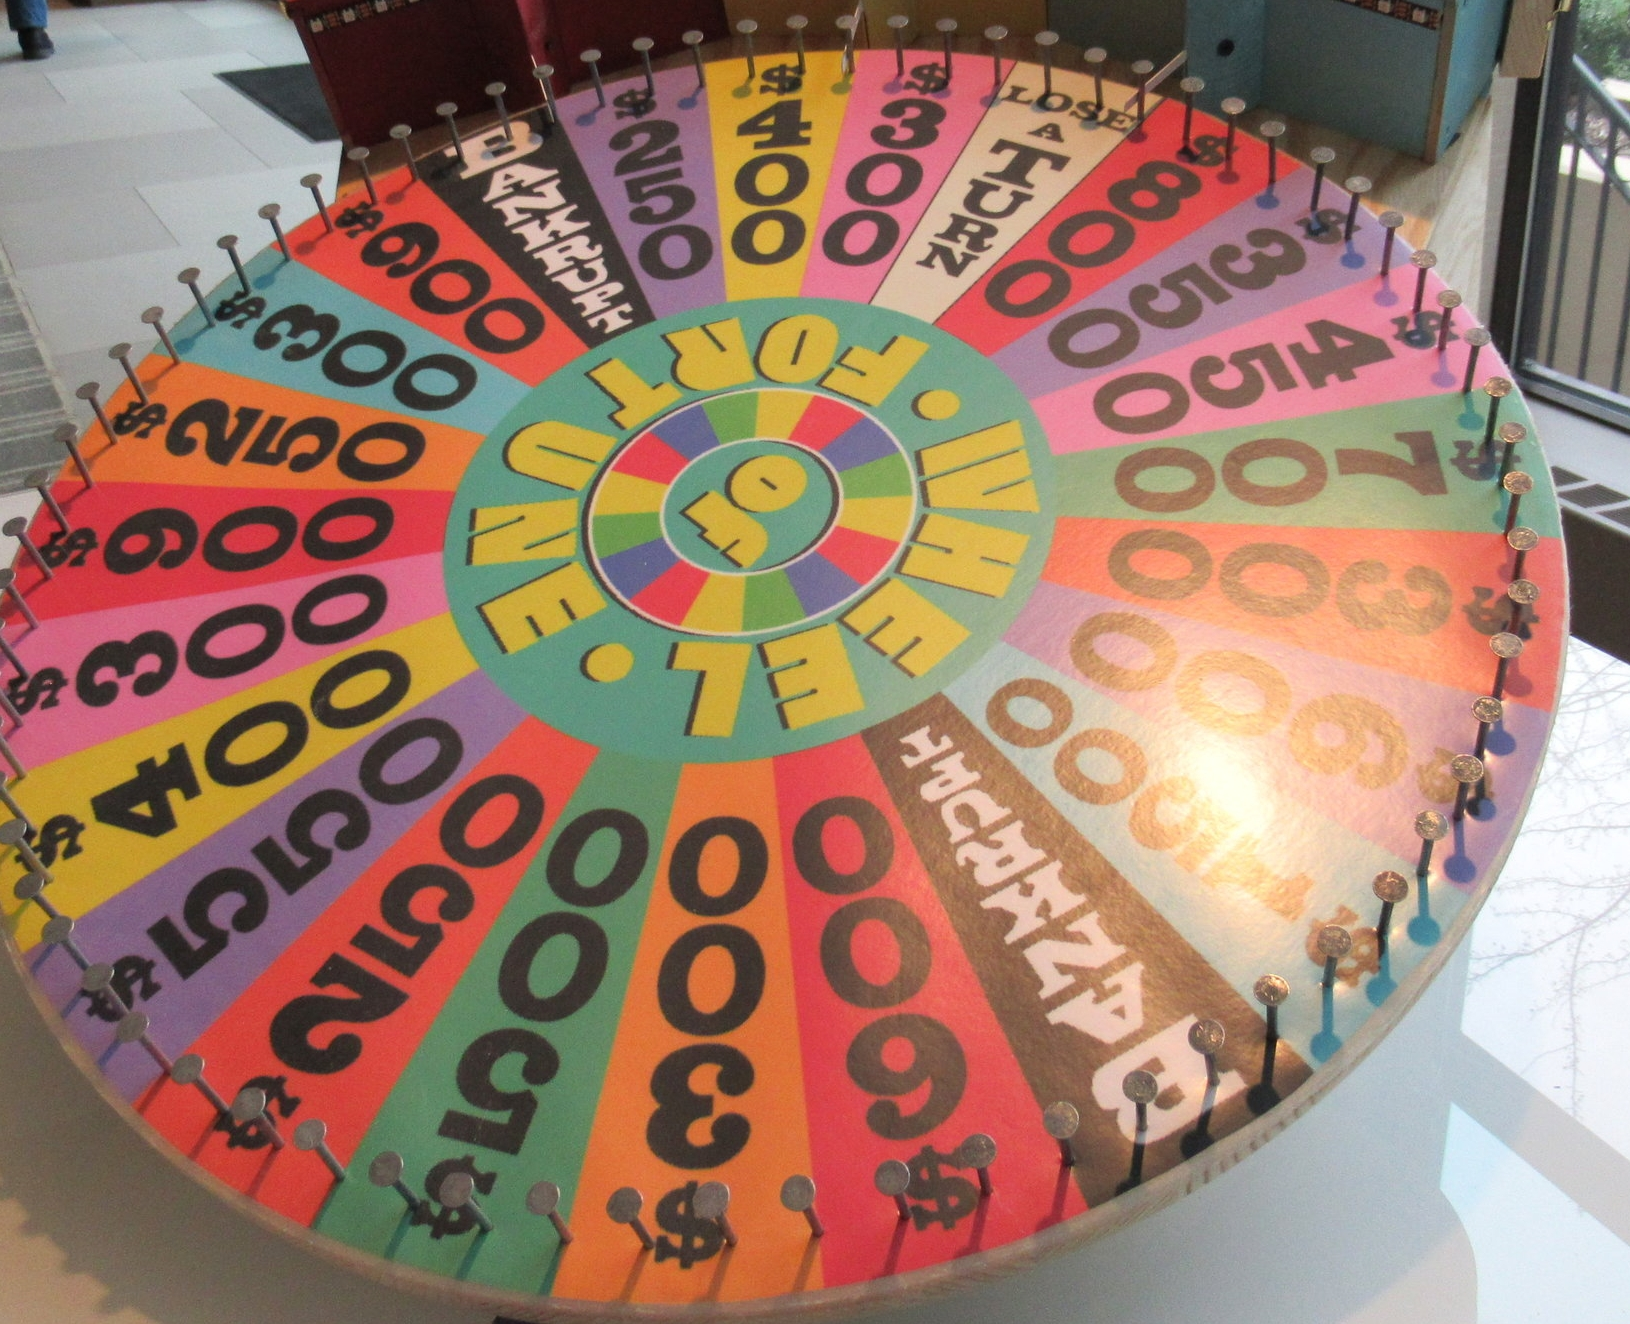 """If I said, """"The Wheel of Fortune,"""" you'd know what I meant, right?   Photo: Mare Swallow"""